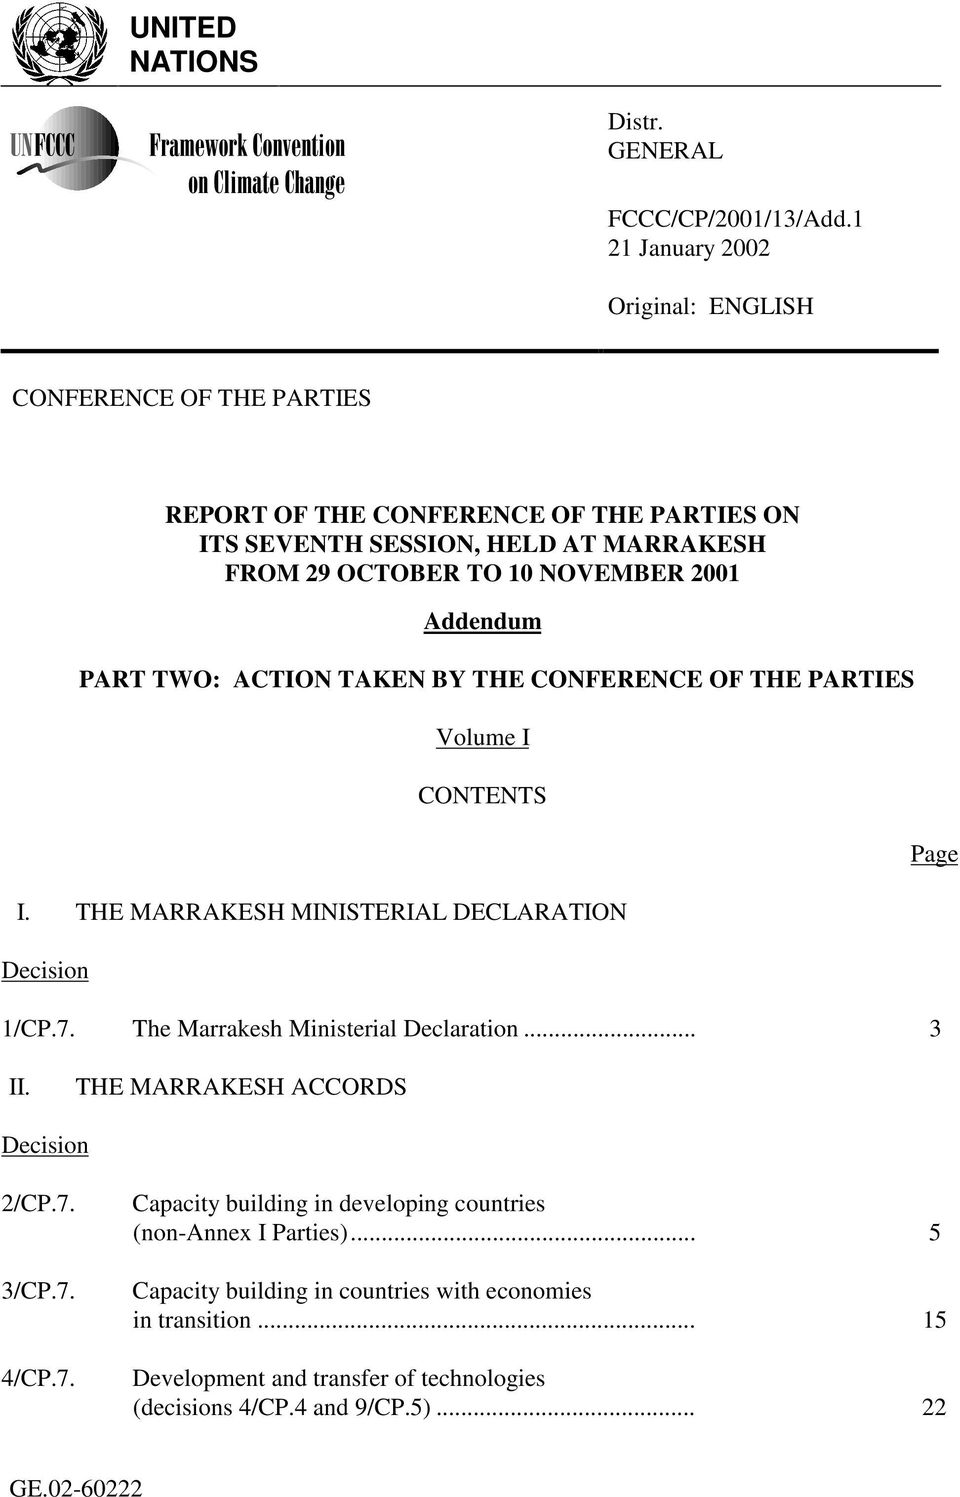 NOVEMBER 2001 Addendum PART TWO: ACTION TAKEN BY THE CONFERENCE OF THE PARTIES Volume I CONTENTS I. THE MARRAKESH MINISTERIAL DECLARATION Decision 1/CP.7.